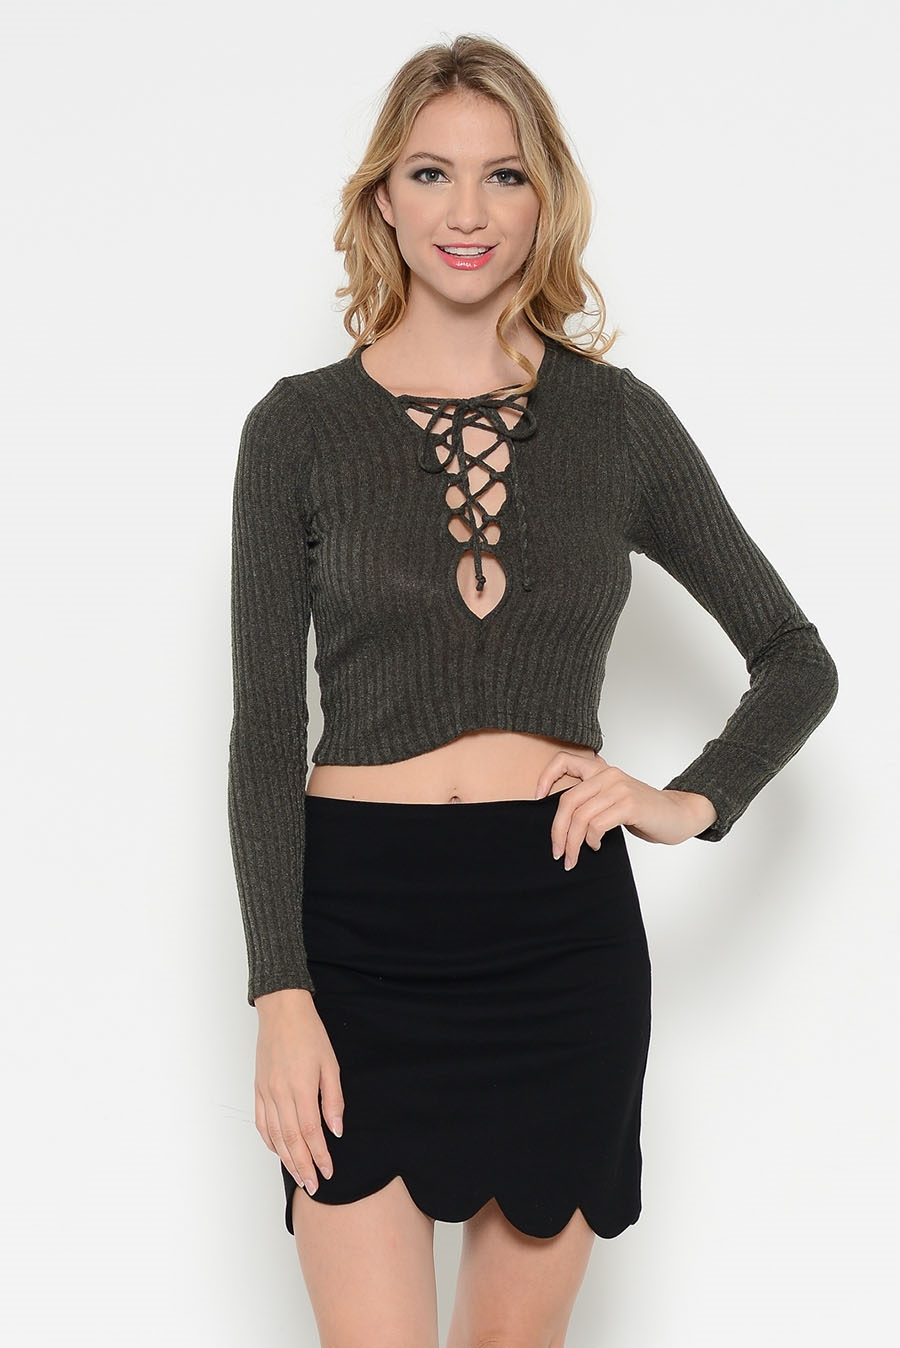 RIB DEEP NECK LONG SLVCROP TOP - orangeshine.com